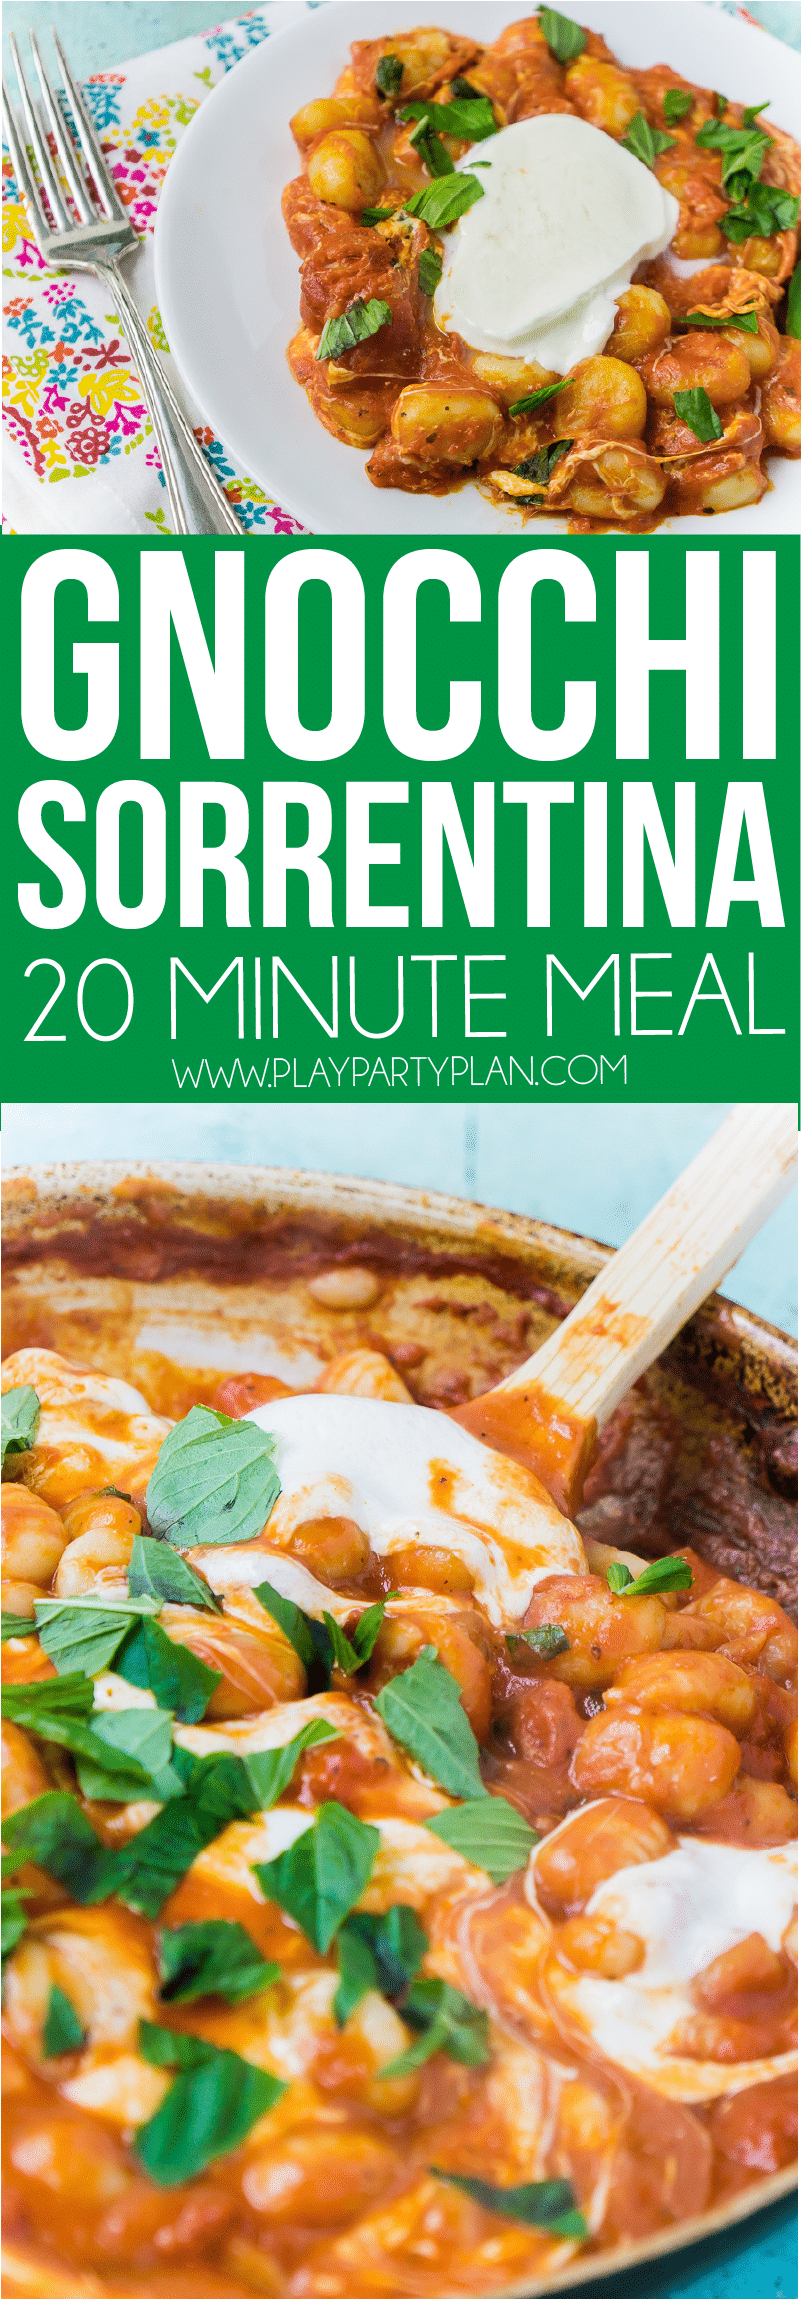 This gnocchi Sorrentina is one of the best gnocchi recipes! It's easy, healthy, and great for anyone, even a vegetarian! And best of all, its just four ingredients - tomato sauce, cheese, gnocchi, and fresh basil! One of the dinners we make every week! via @playpartyplan